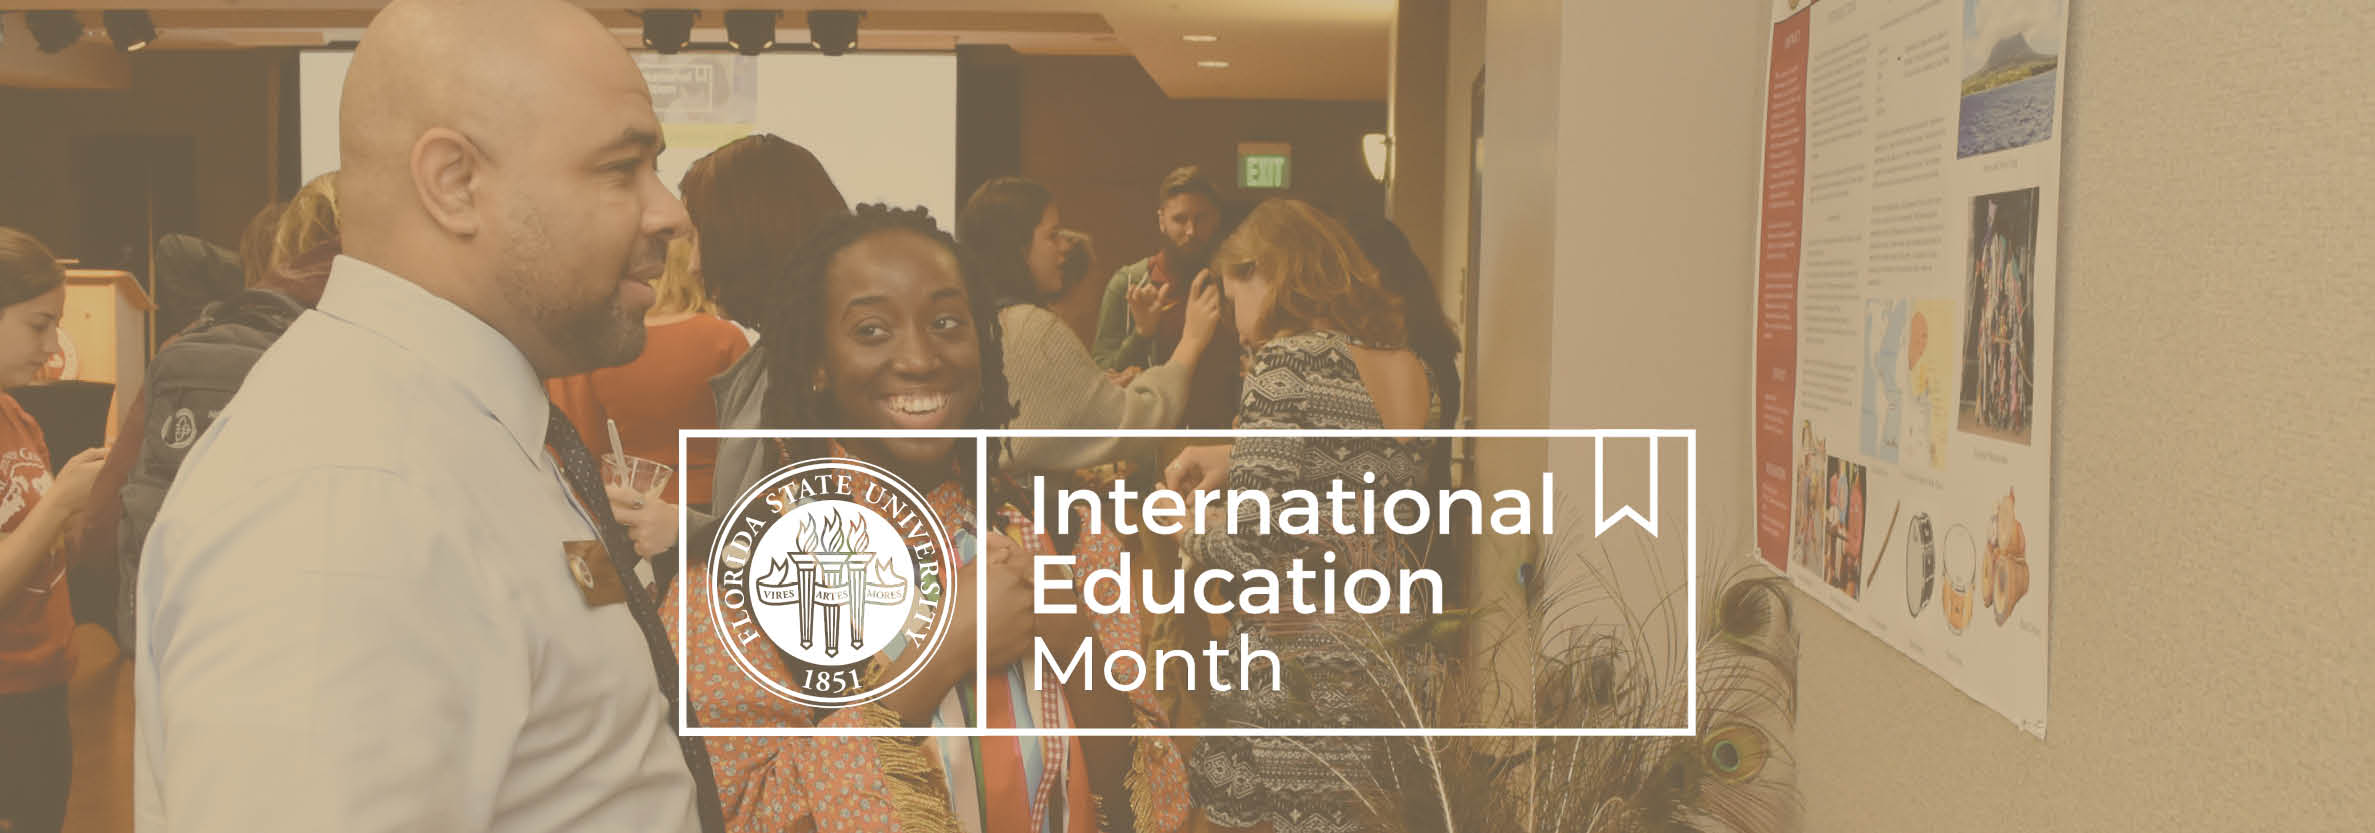 International Education Month – Going Global Showcase